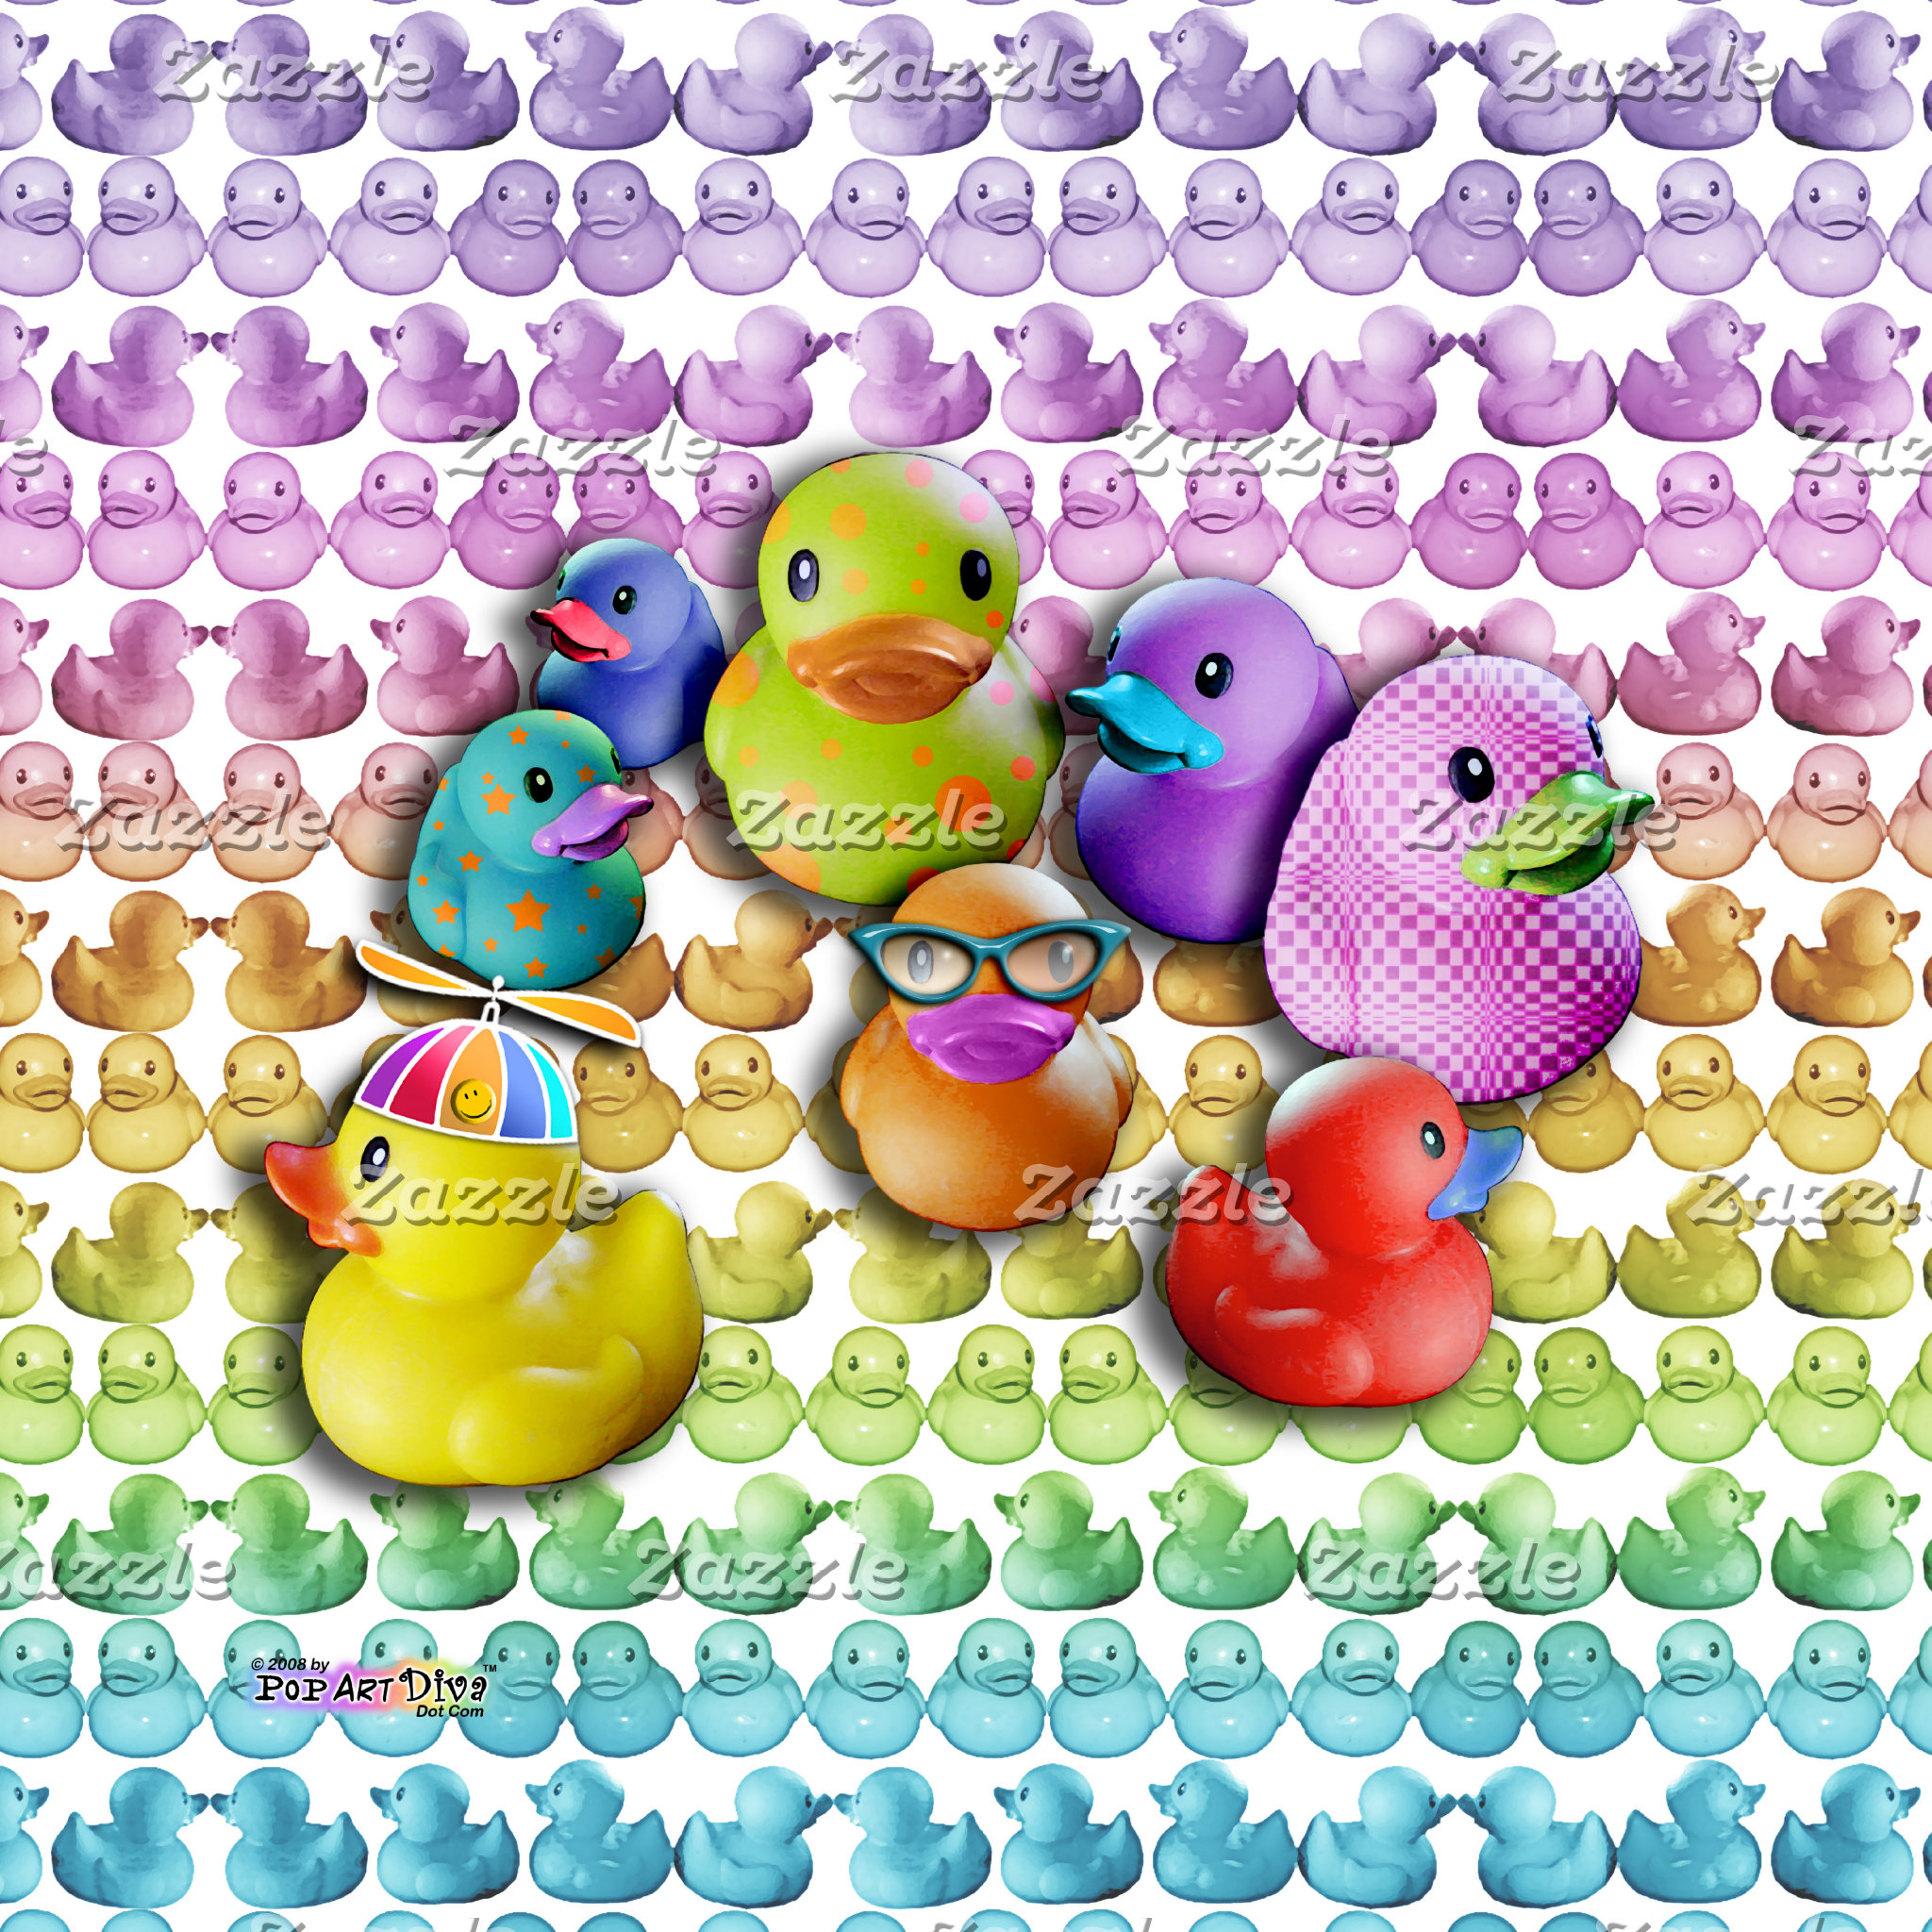 m. RUBBER DUCKIES